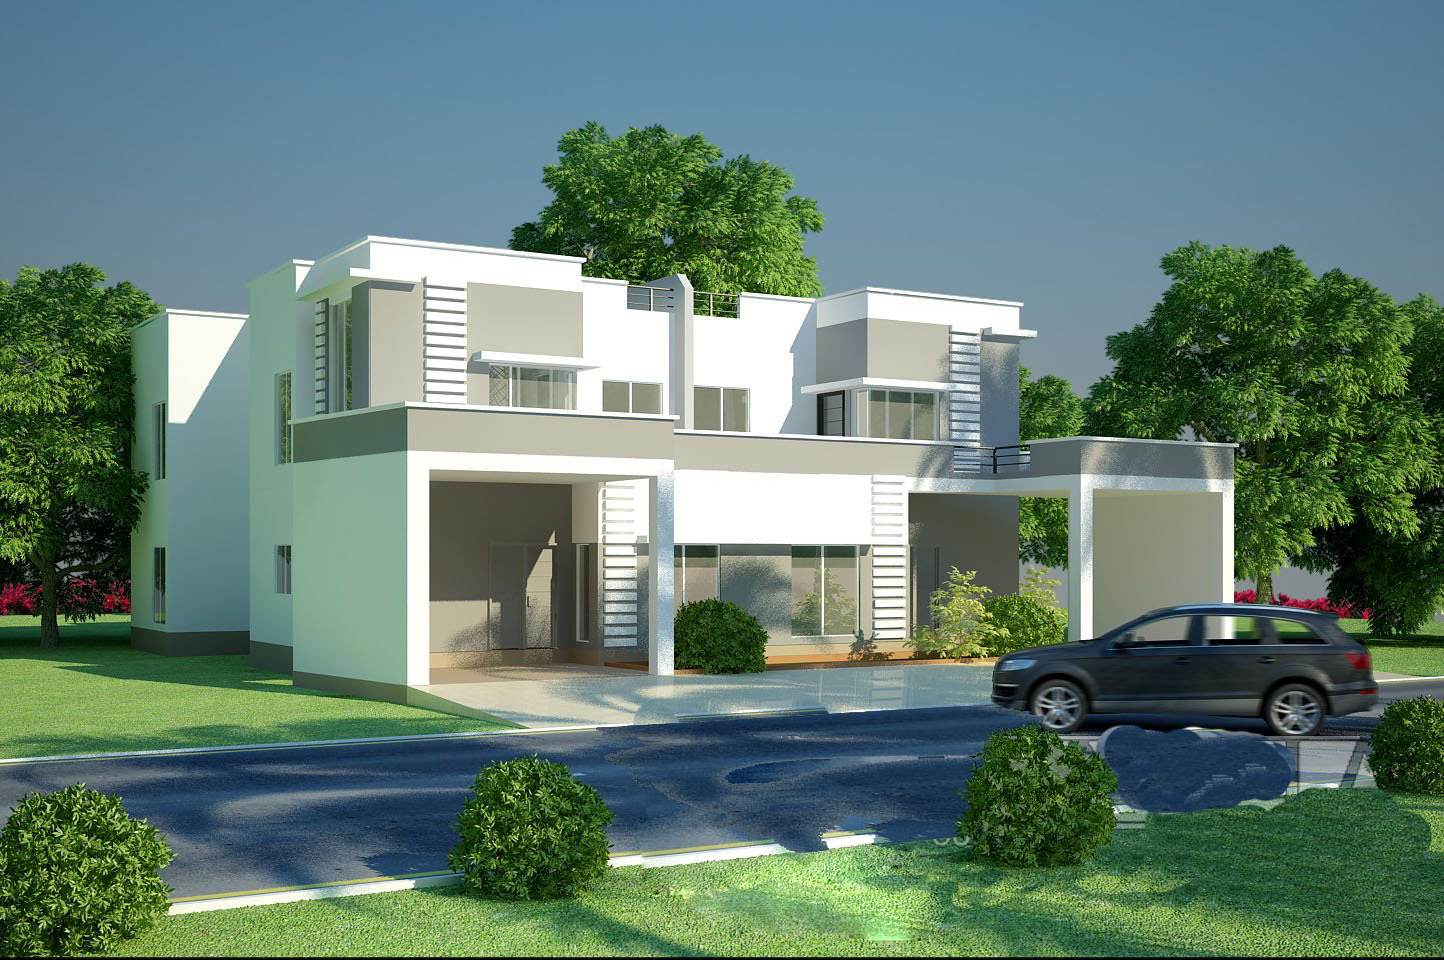 Modern homes exterior designs front views pictures for Modern exterior house designs